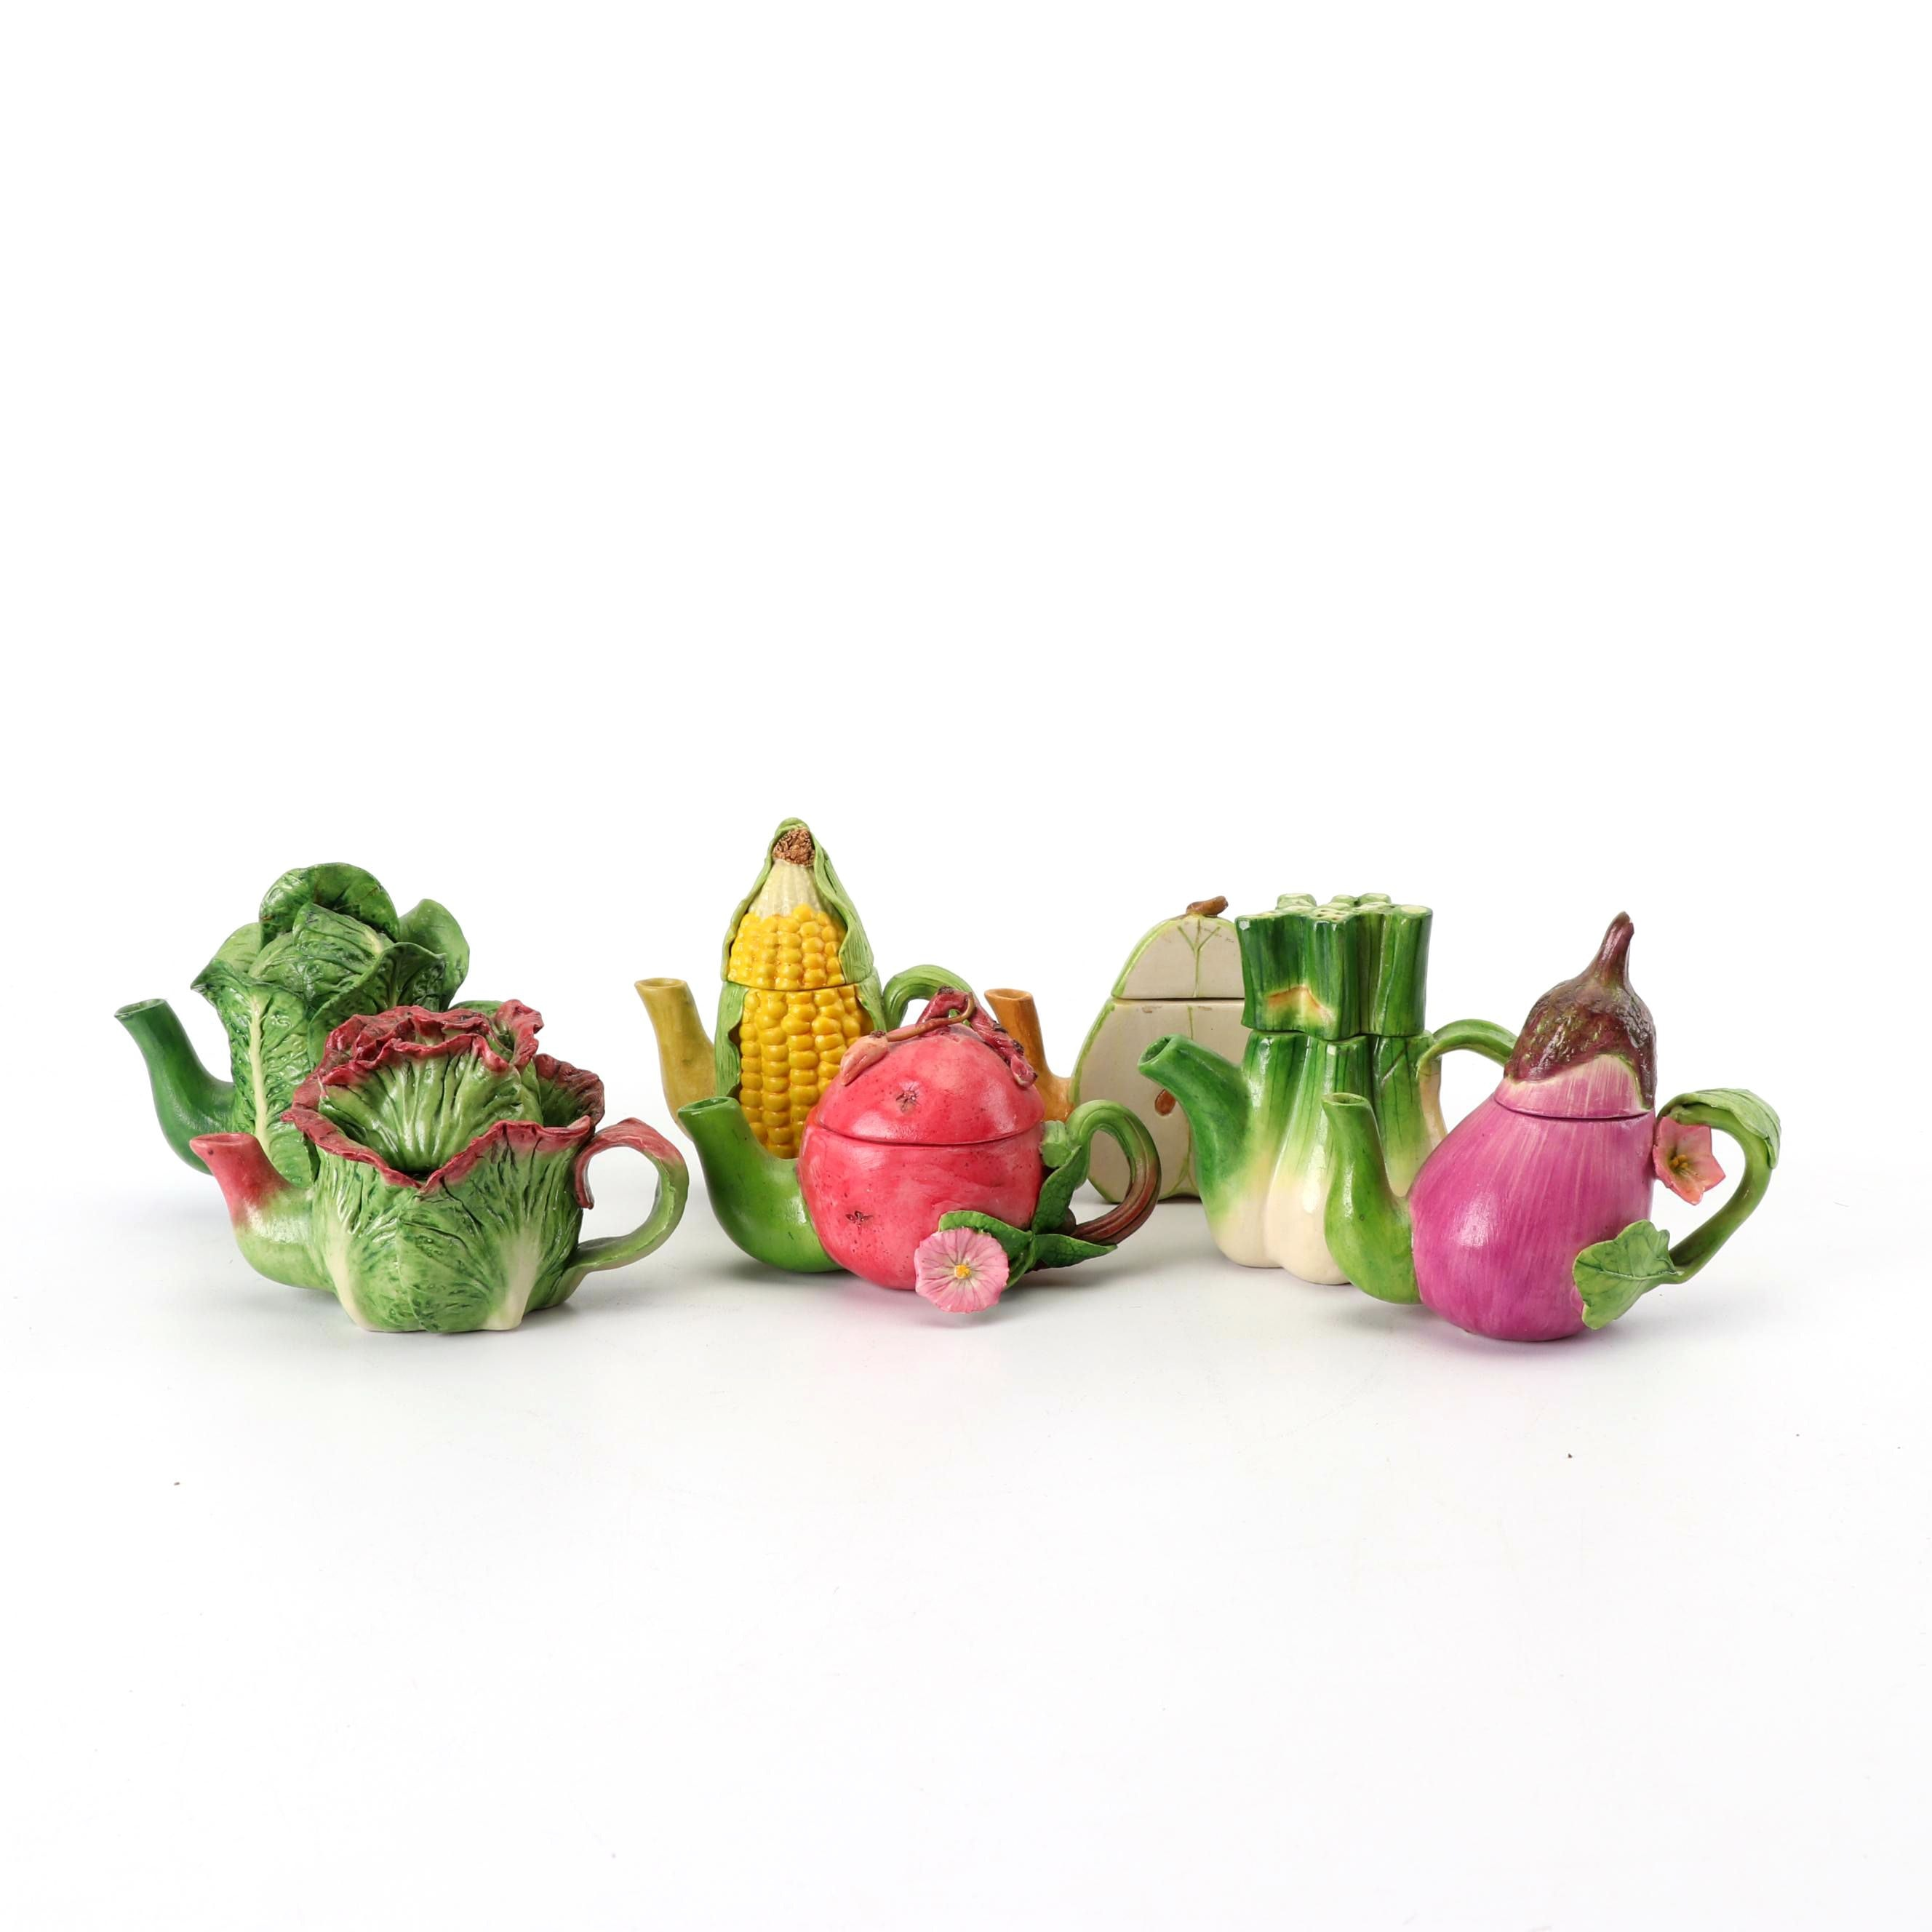 Miniature Fruit and Vegetable Ceramic Teapots